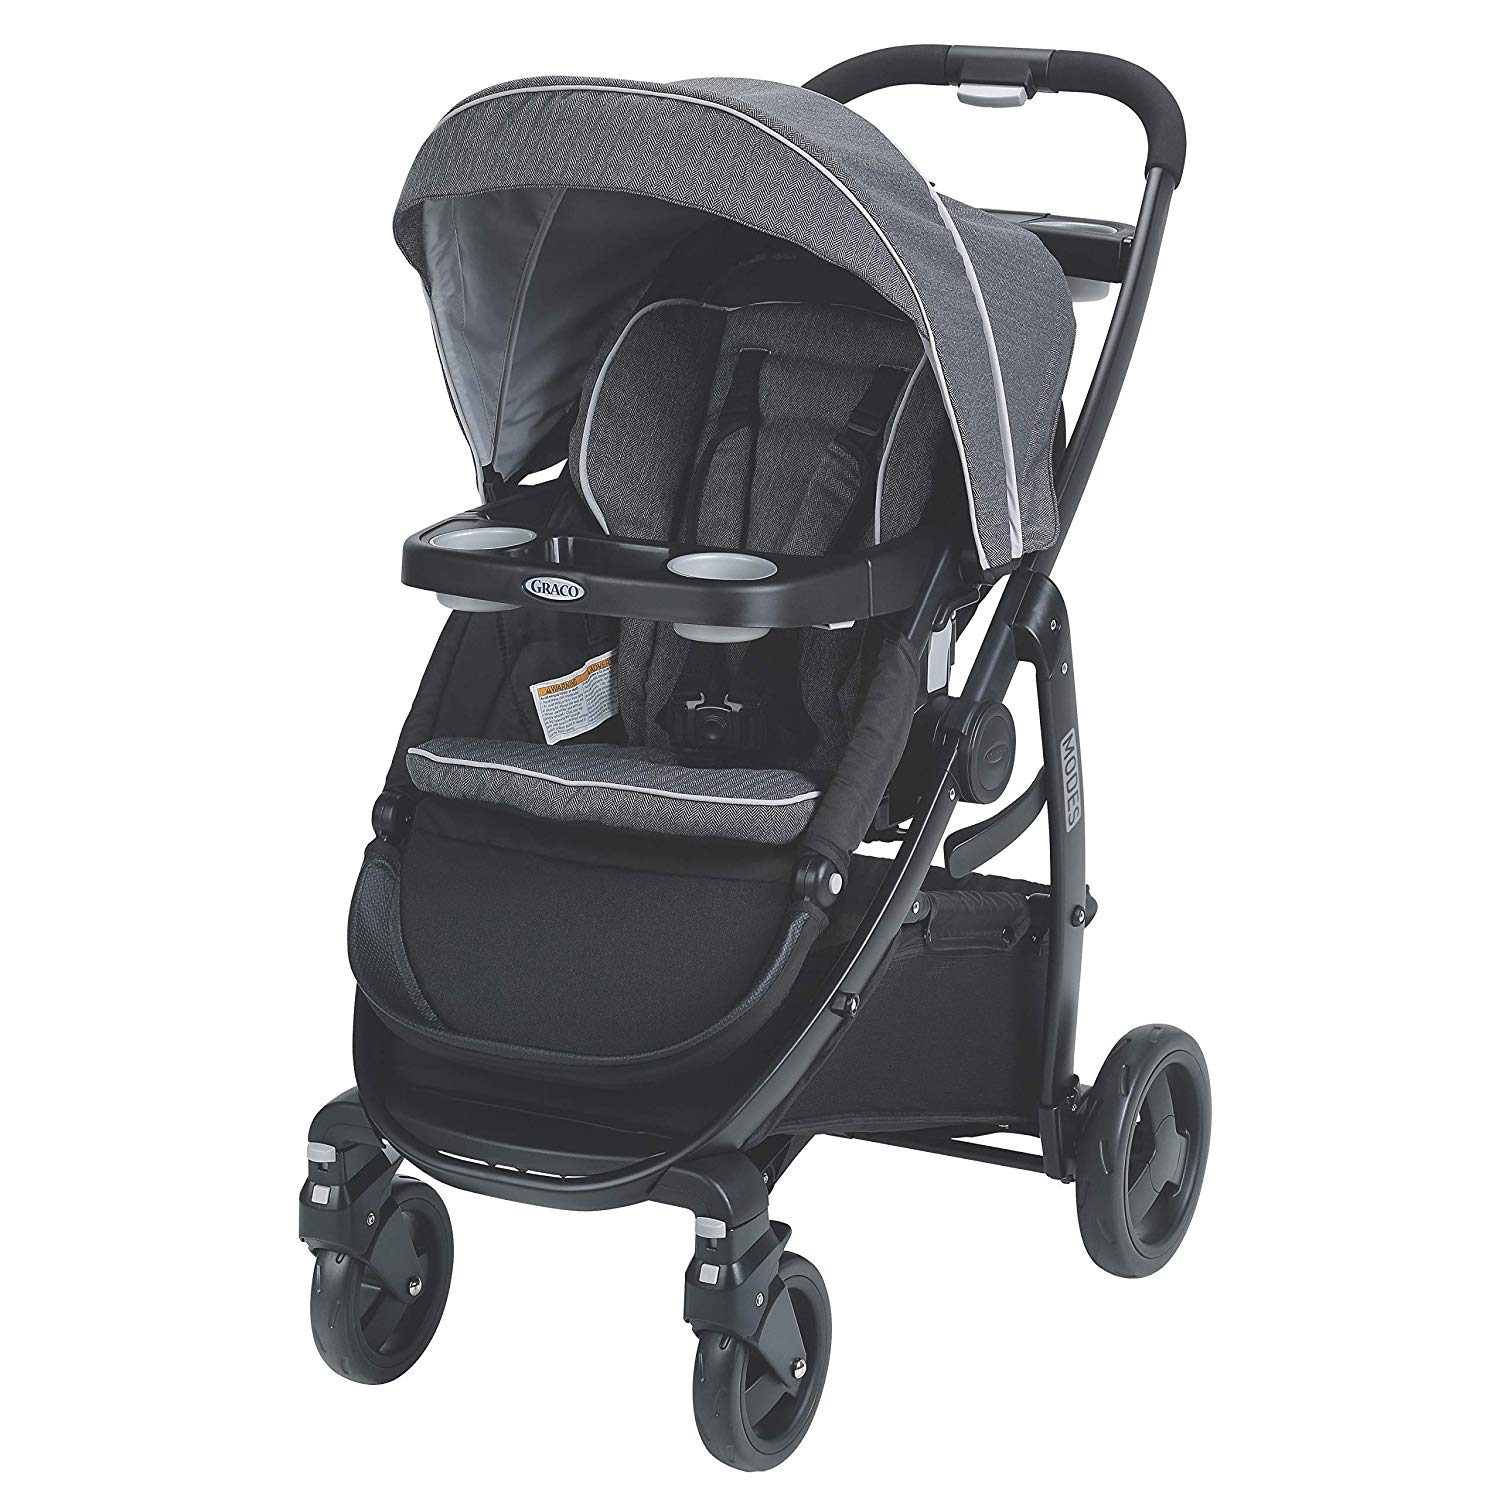 Review of Graco Modes Click Connect Stroller, Grayson